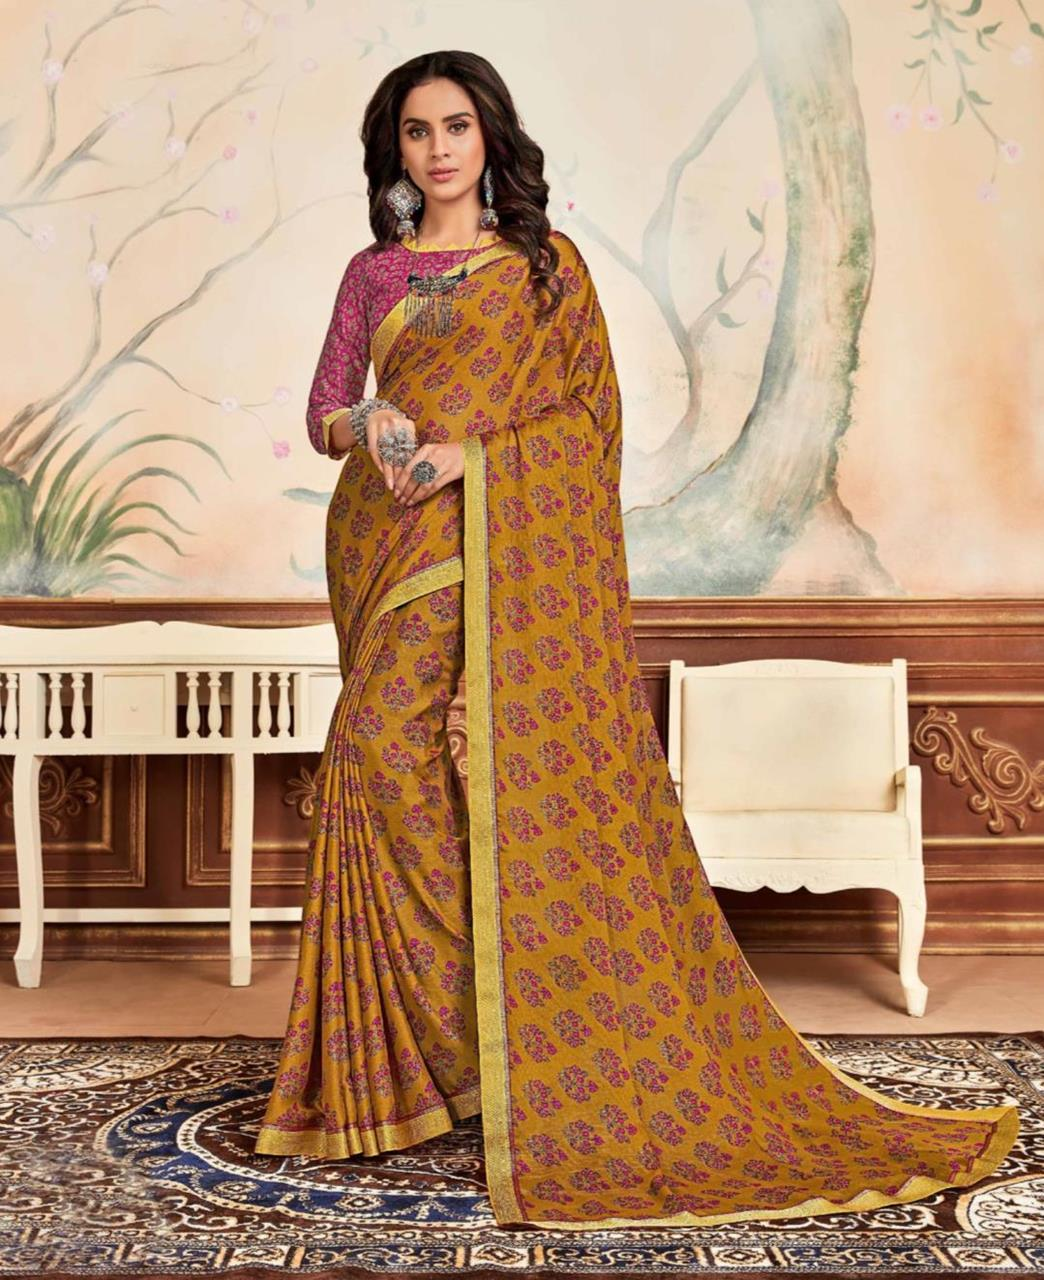 Lace Chiffon Saree in Musterd